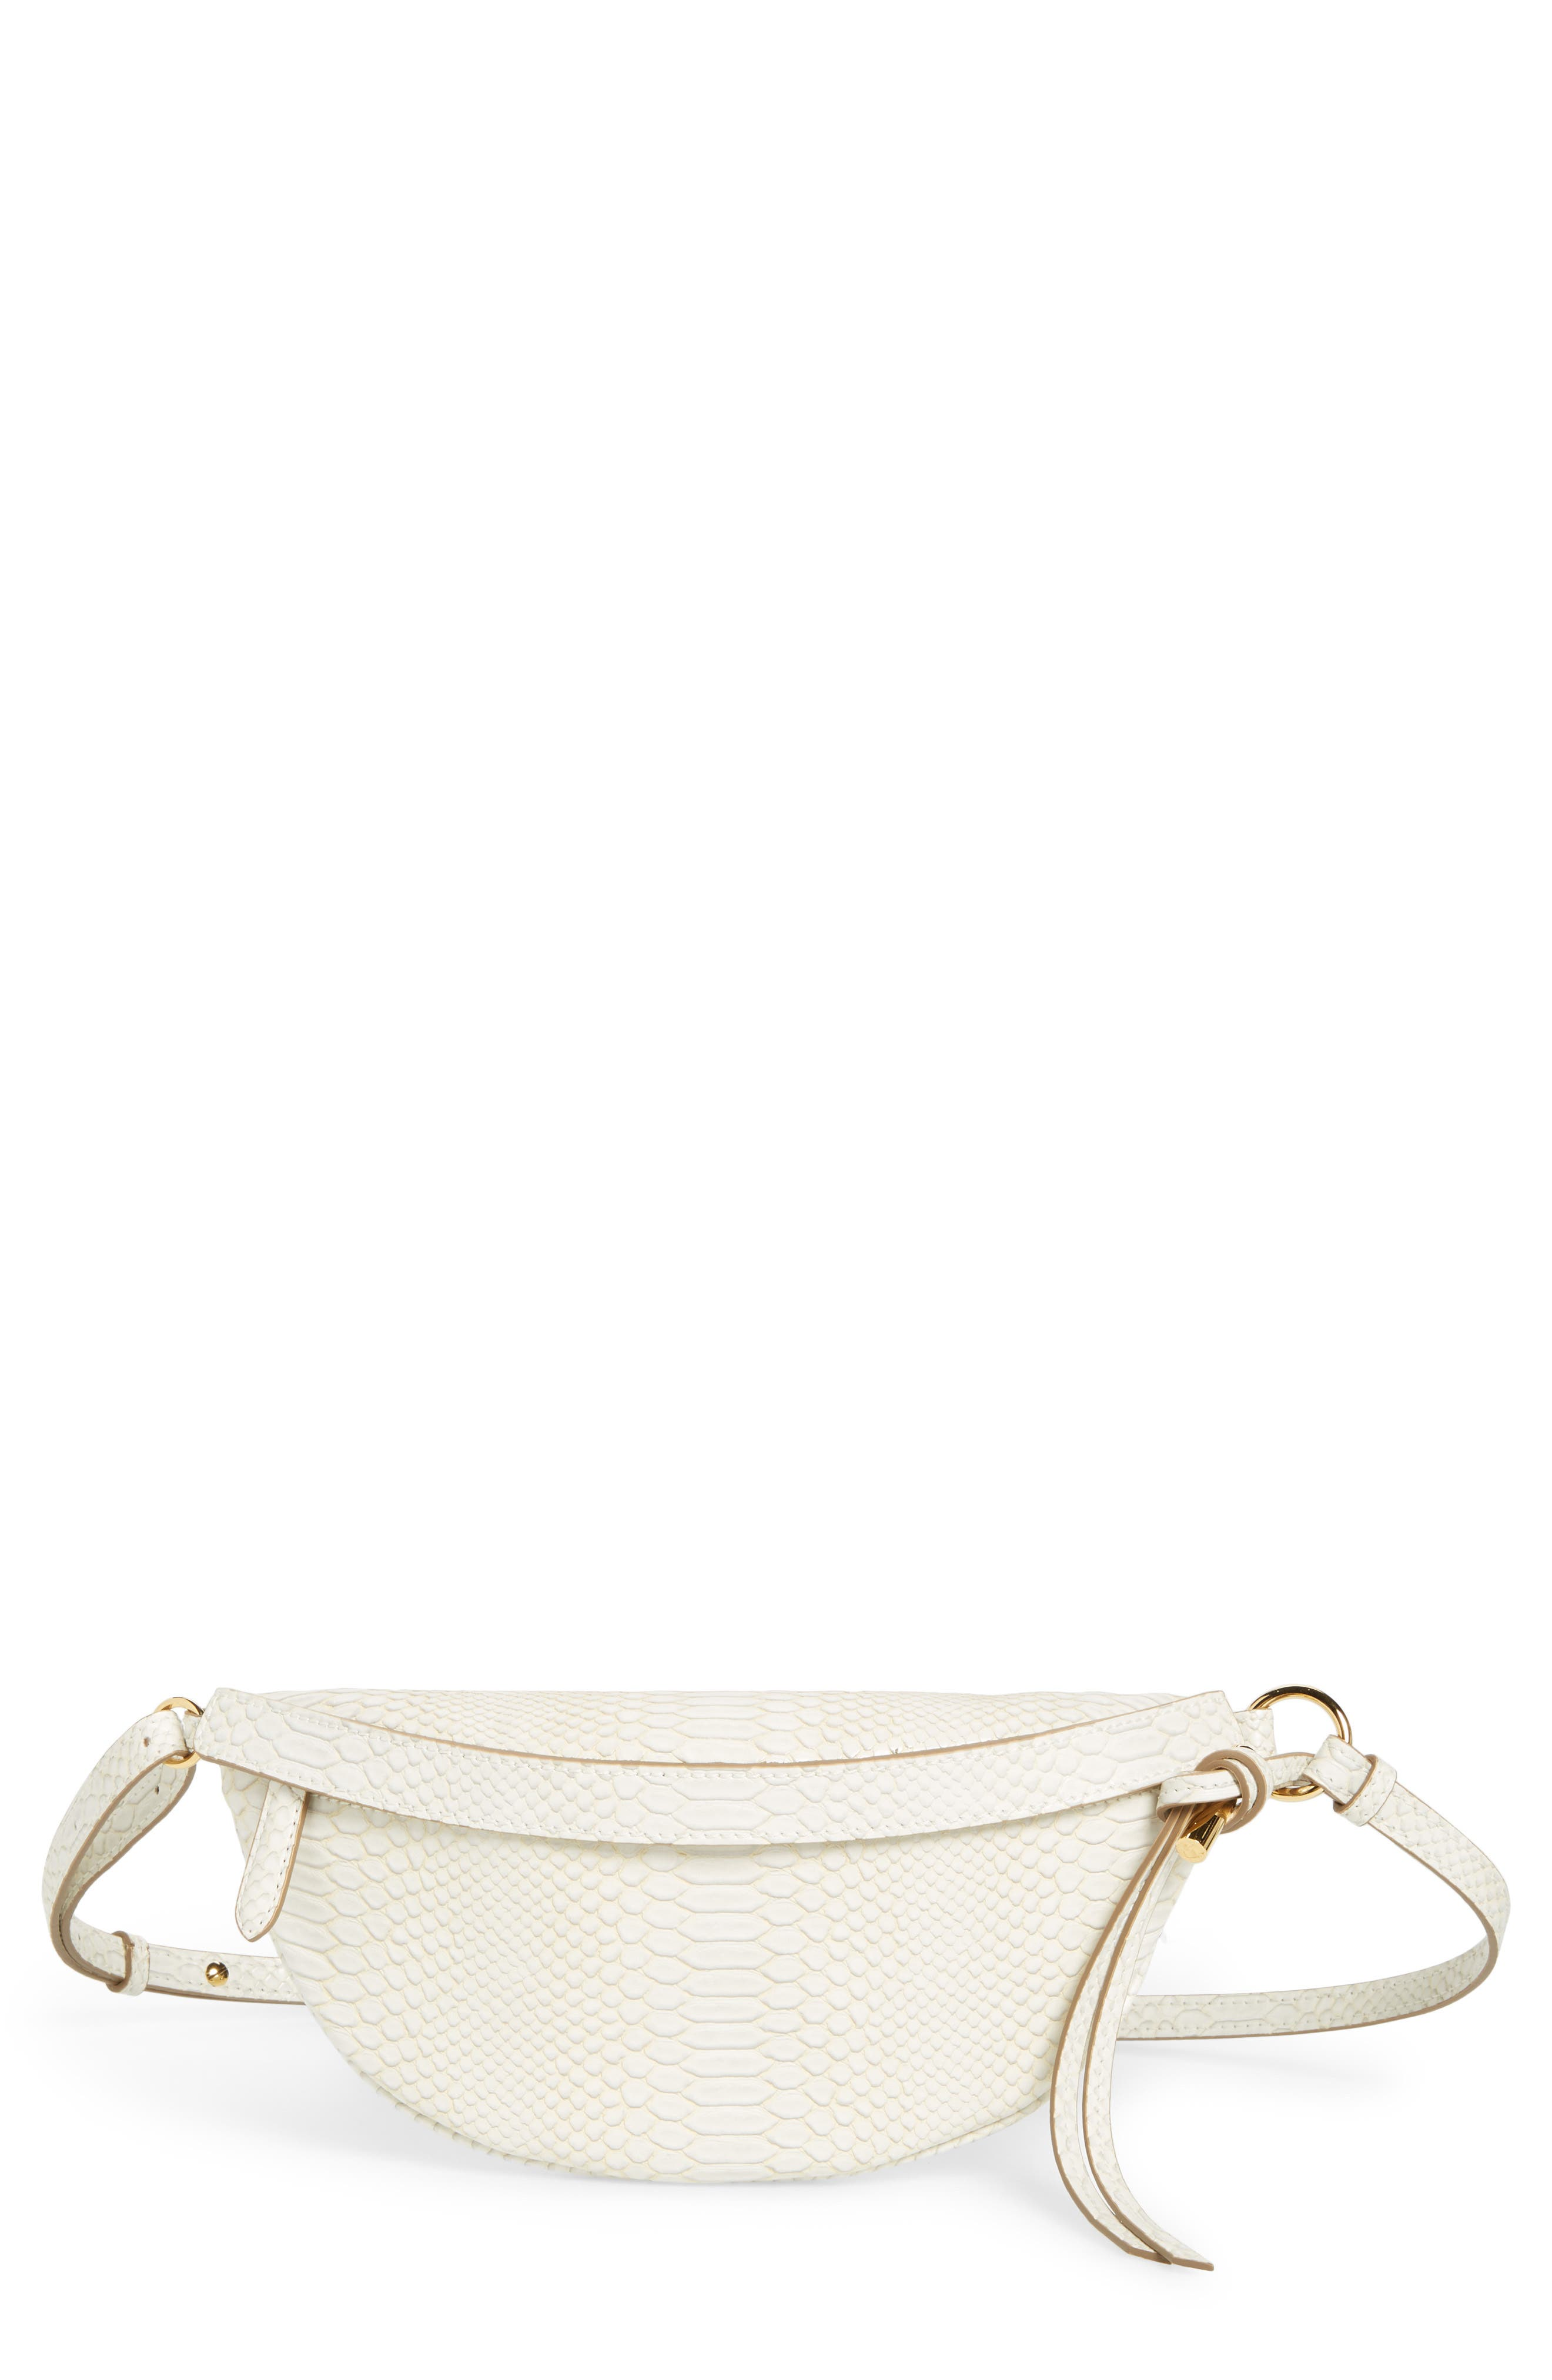 Alter Snake Faux Leather Fanny Pack,                         Main,                         color, IVORY